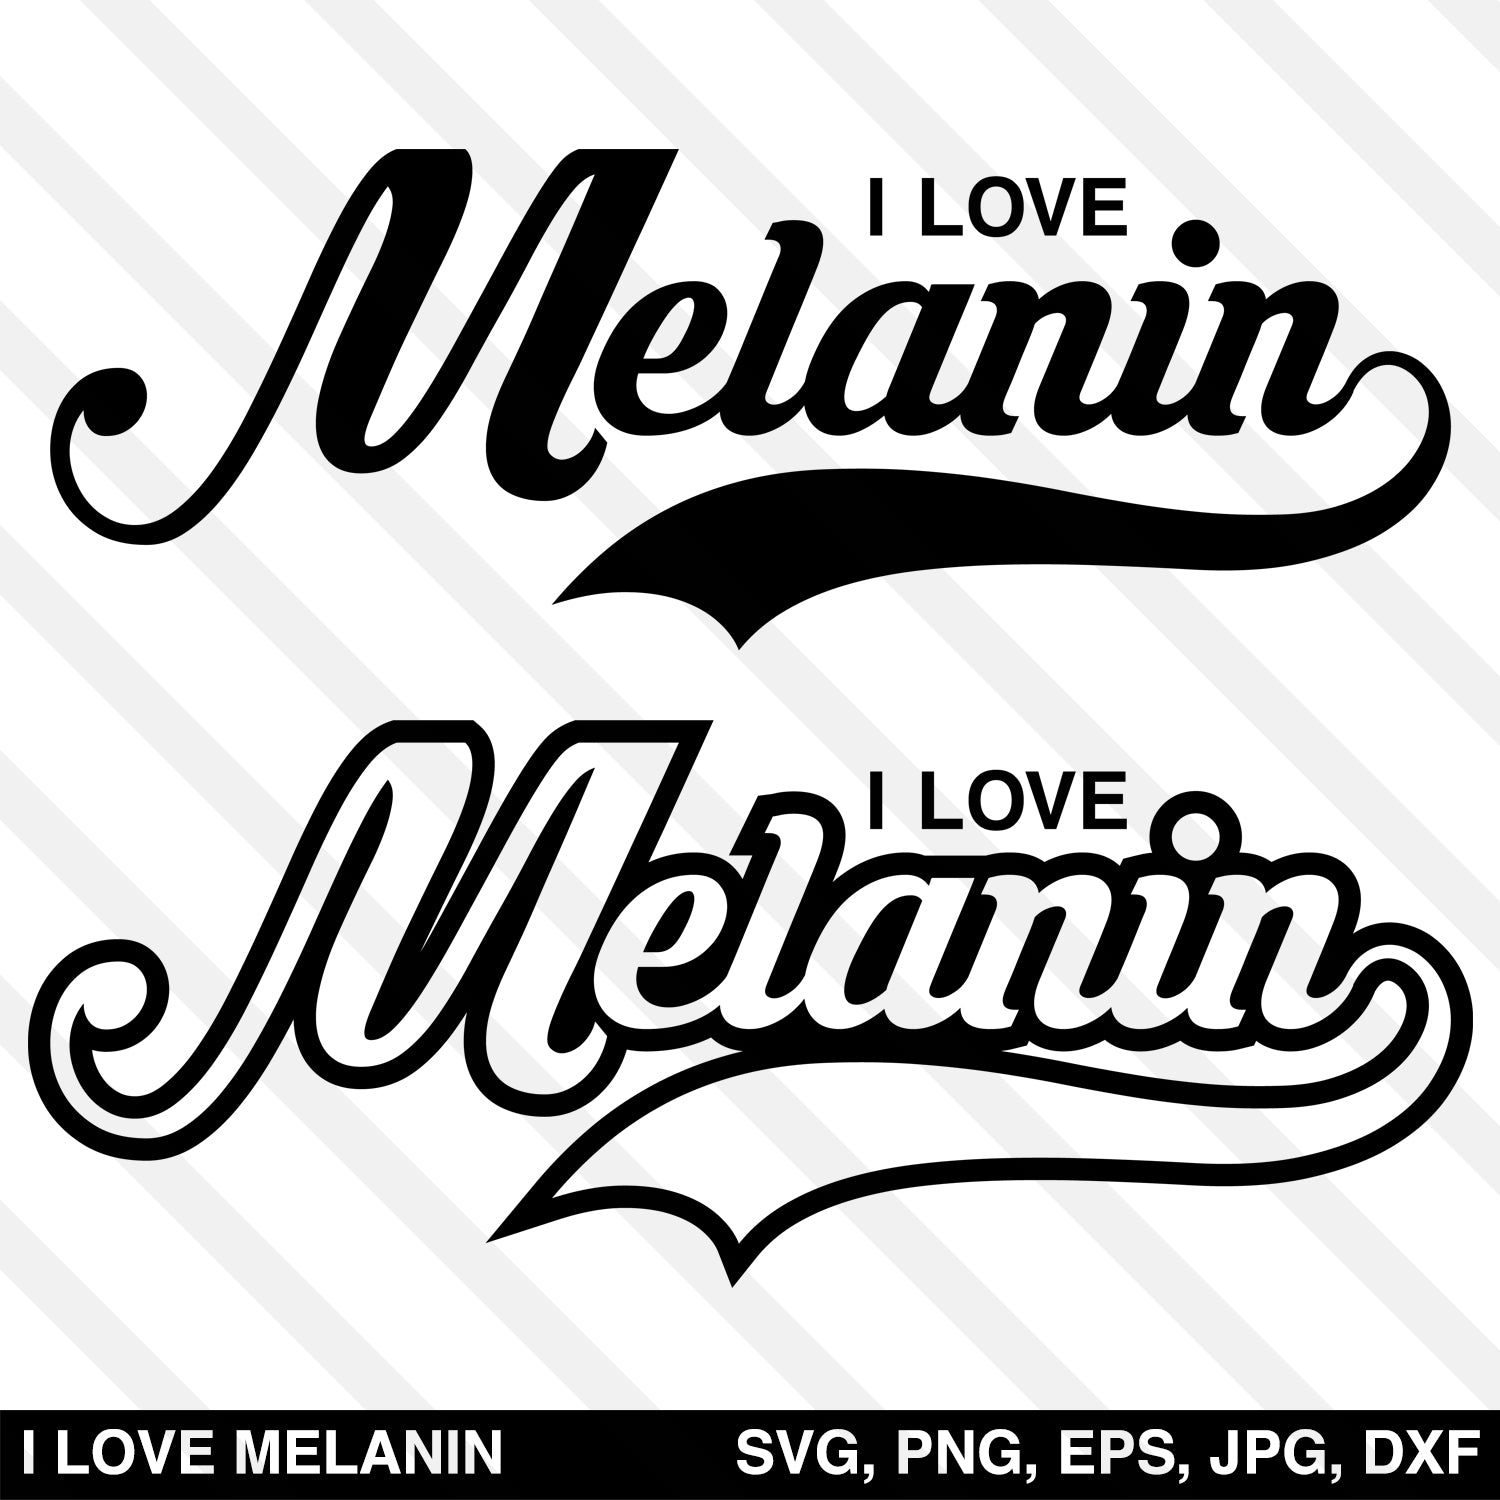 I Love Melanin SVG